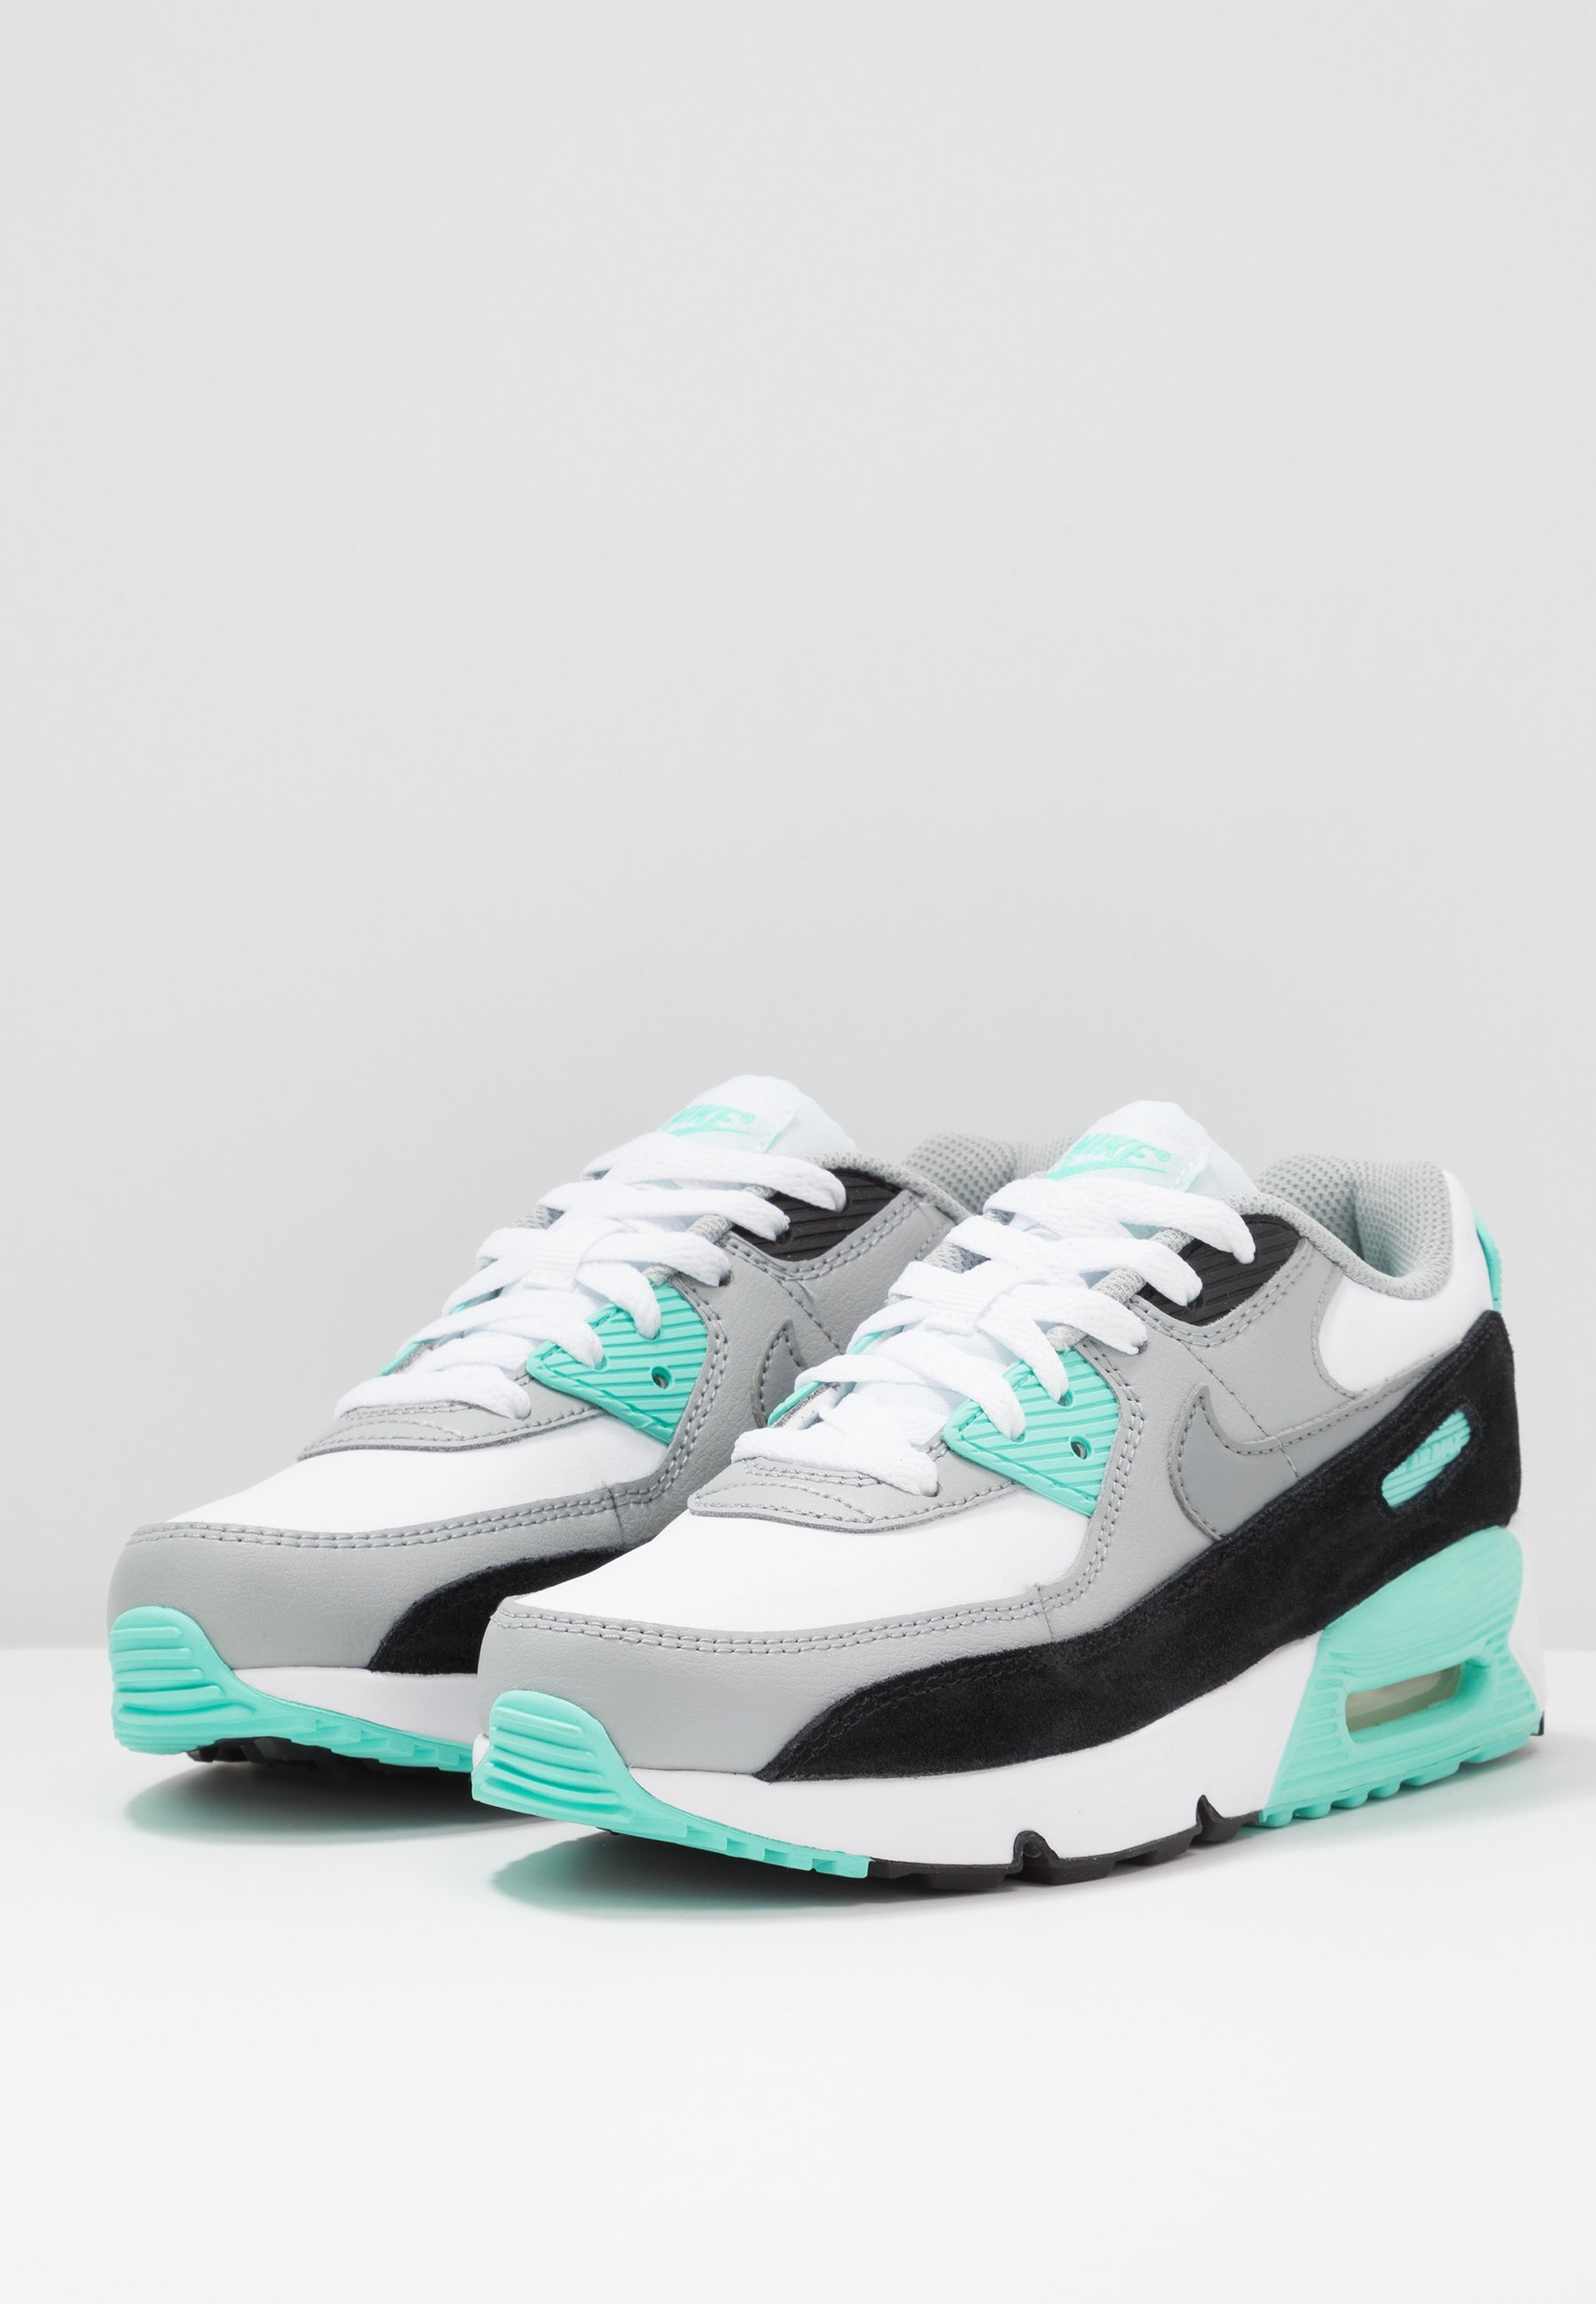 Nike Sportswear Air Max 90 - Sneakers White/particle Grey/light Smoke Grey/hyper Turquoise/black